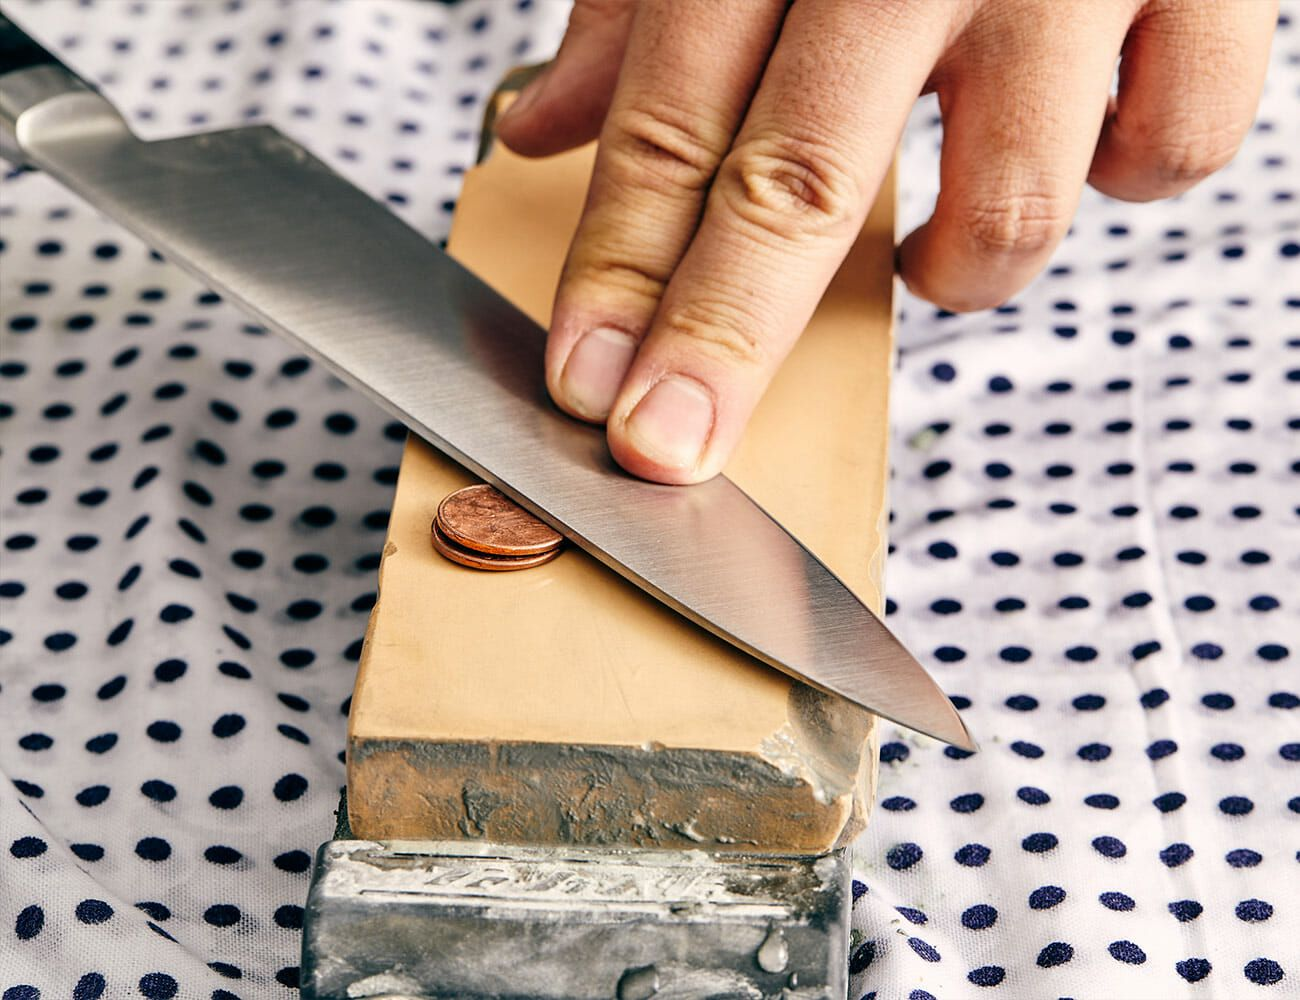 sharpening kitchen knives how to sharpen kitchen knives the right way gear patrol